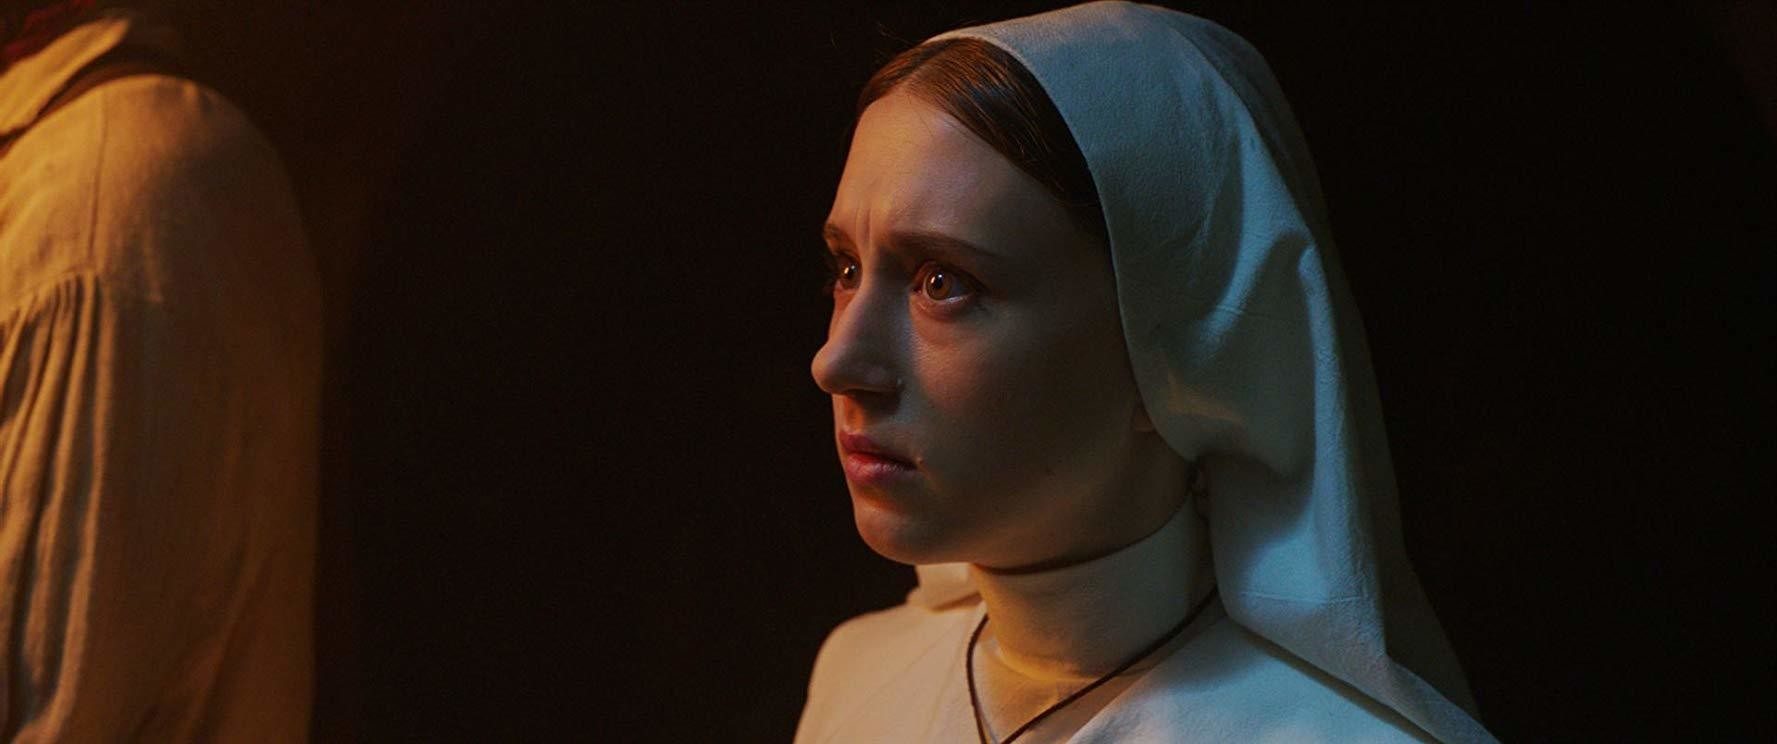 'The Nun' Gives Off 'Exorcist' Vibes, But Not Enough